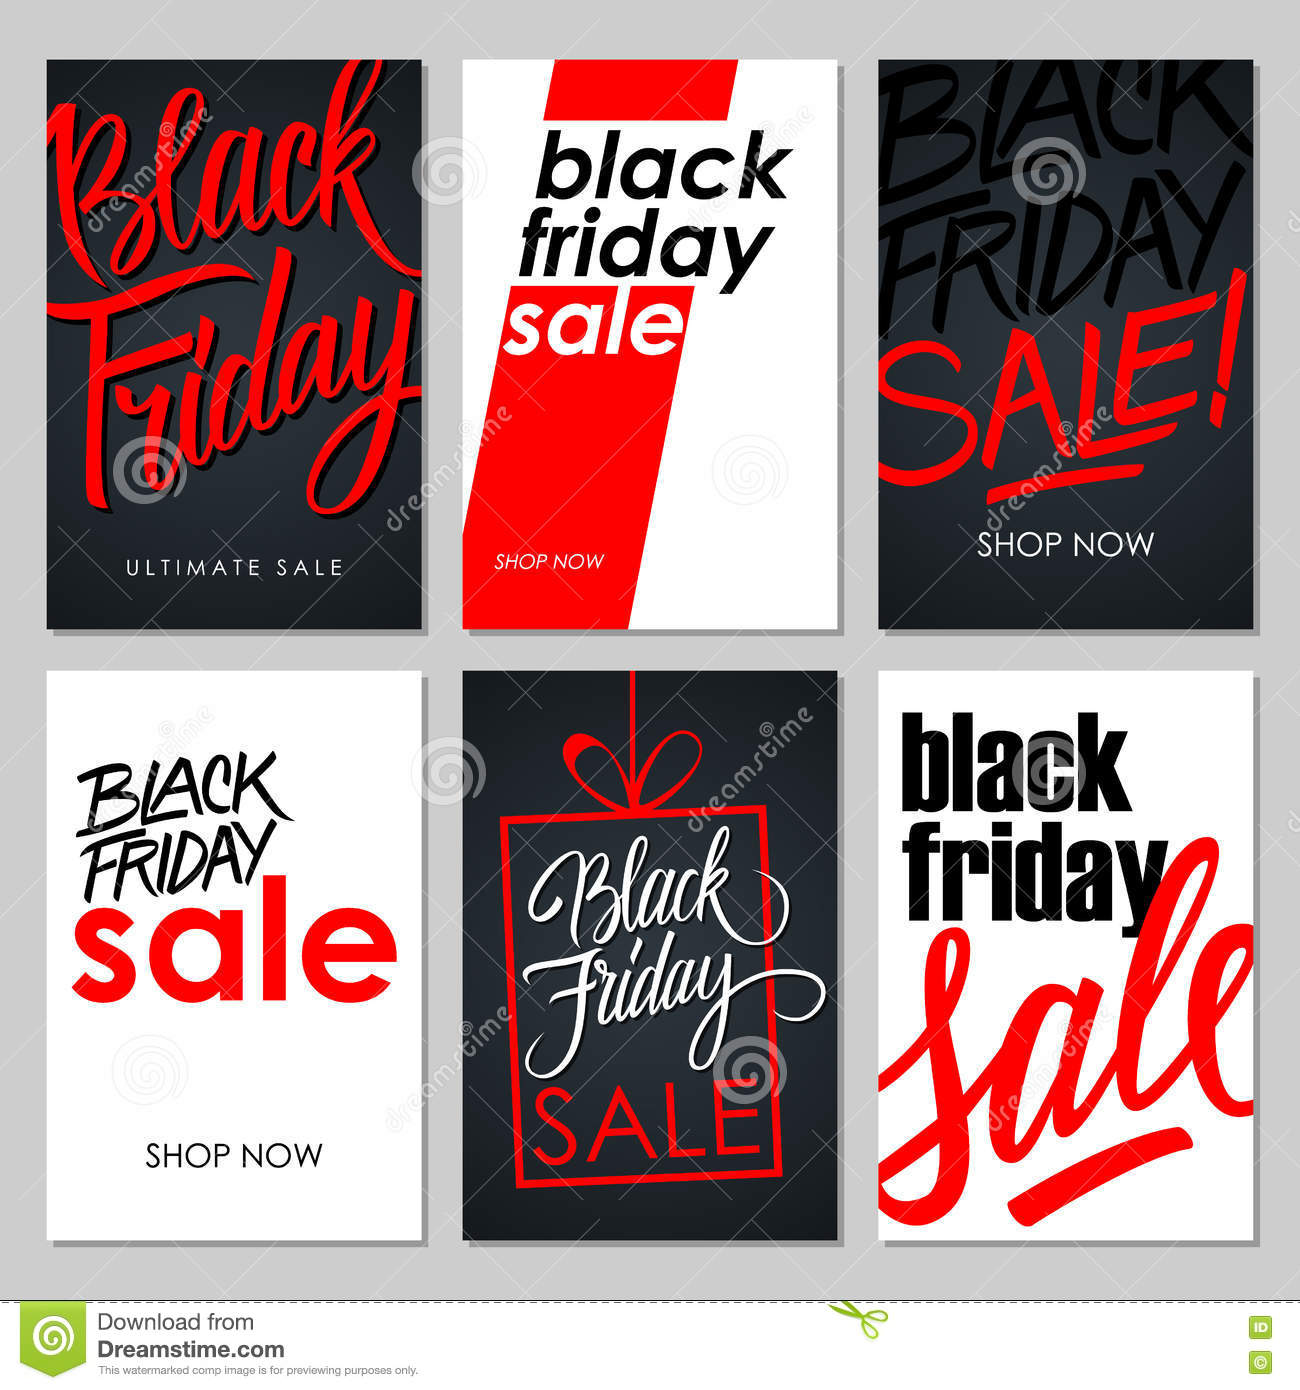 Friday Sale Set Of Black Friday Sale Flyers With Handwritten Elements